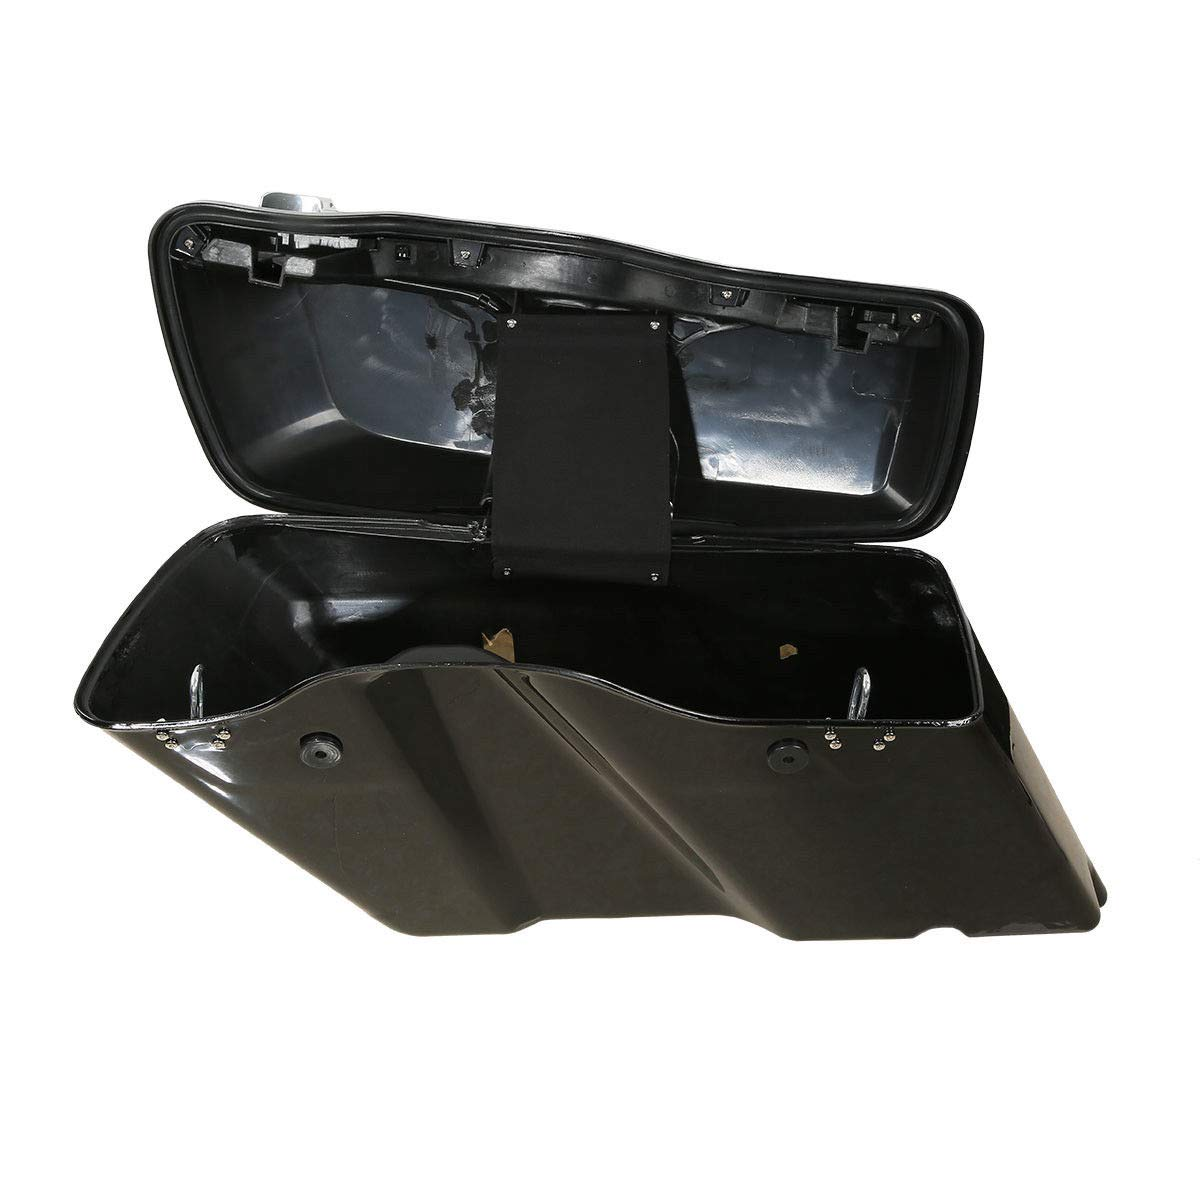 TCMT 5'' Stretched Extended Saddlebags W/Latch Key Fits For Harley Touring 2014-2019 by TCMT (Image #4)